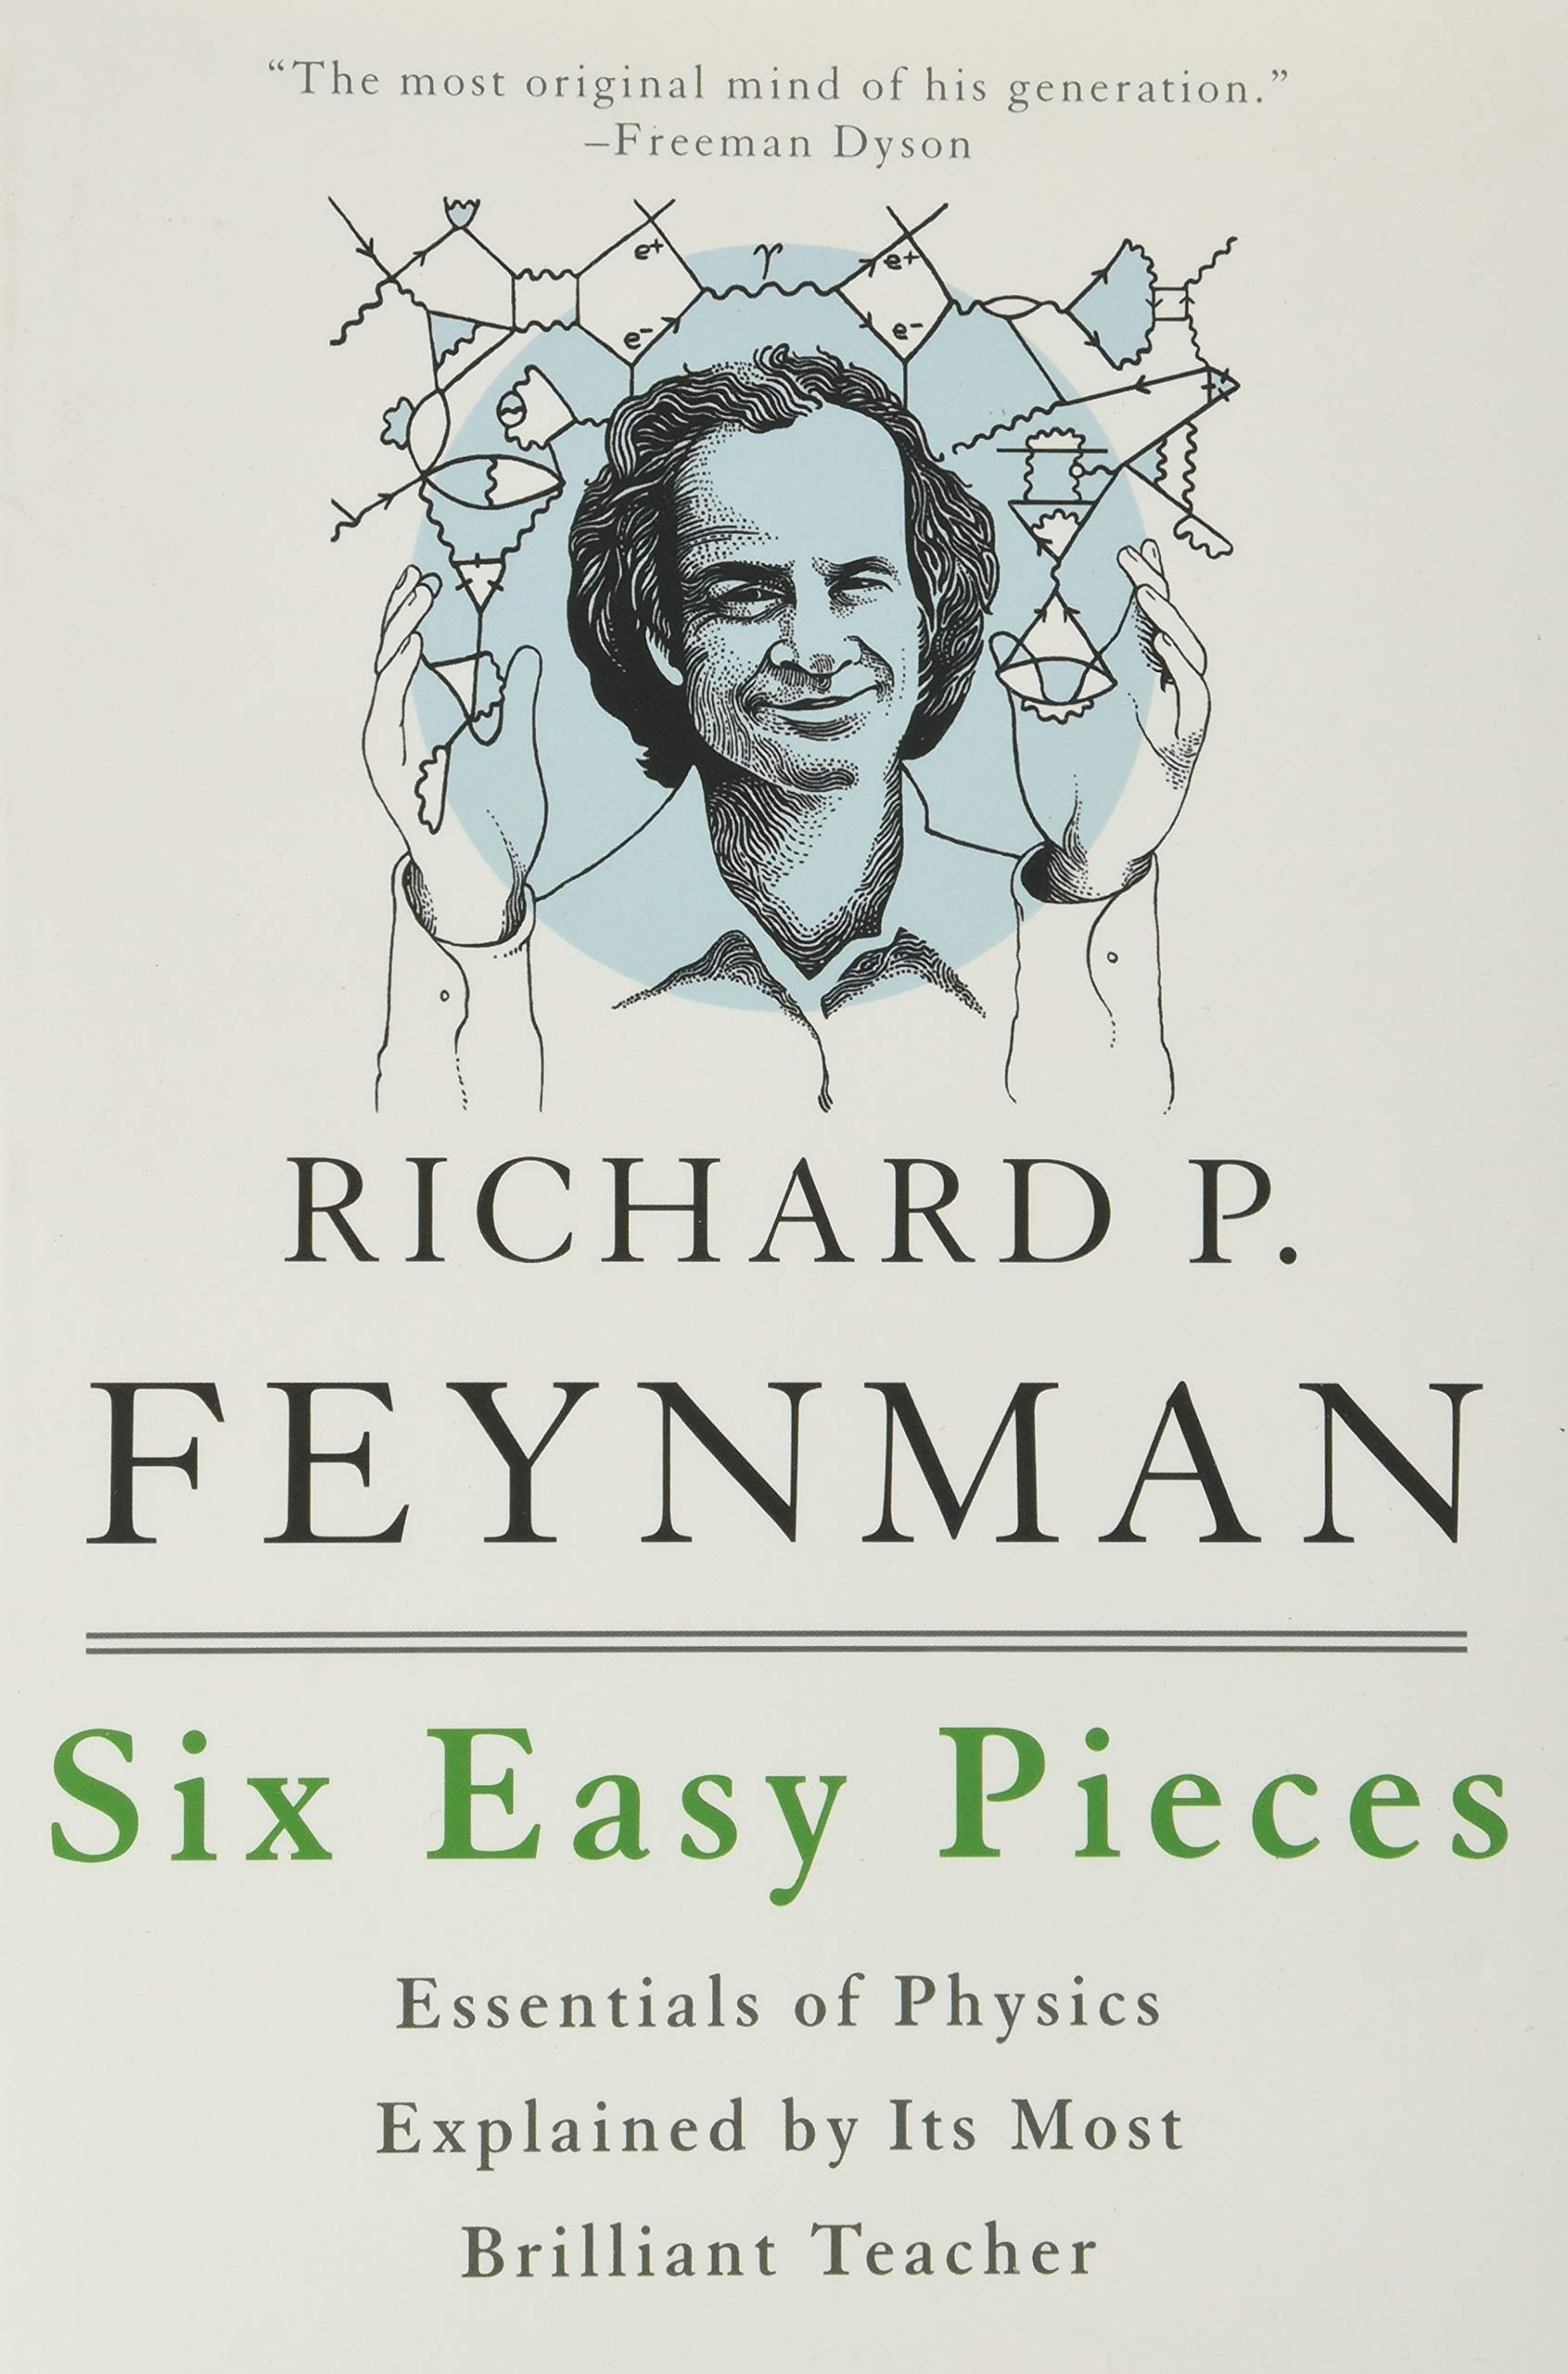 Six Easy Pieces: Essentials of Physics Explained by means of Its Most Brilliant Teacher